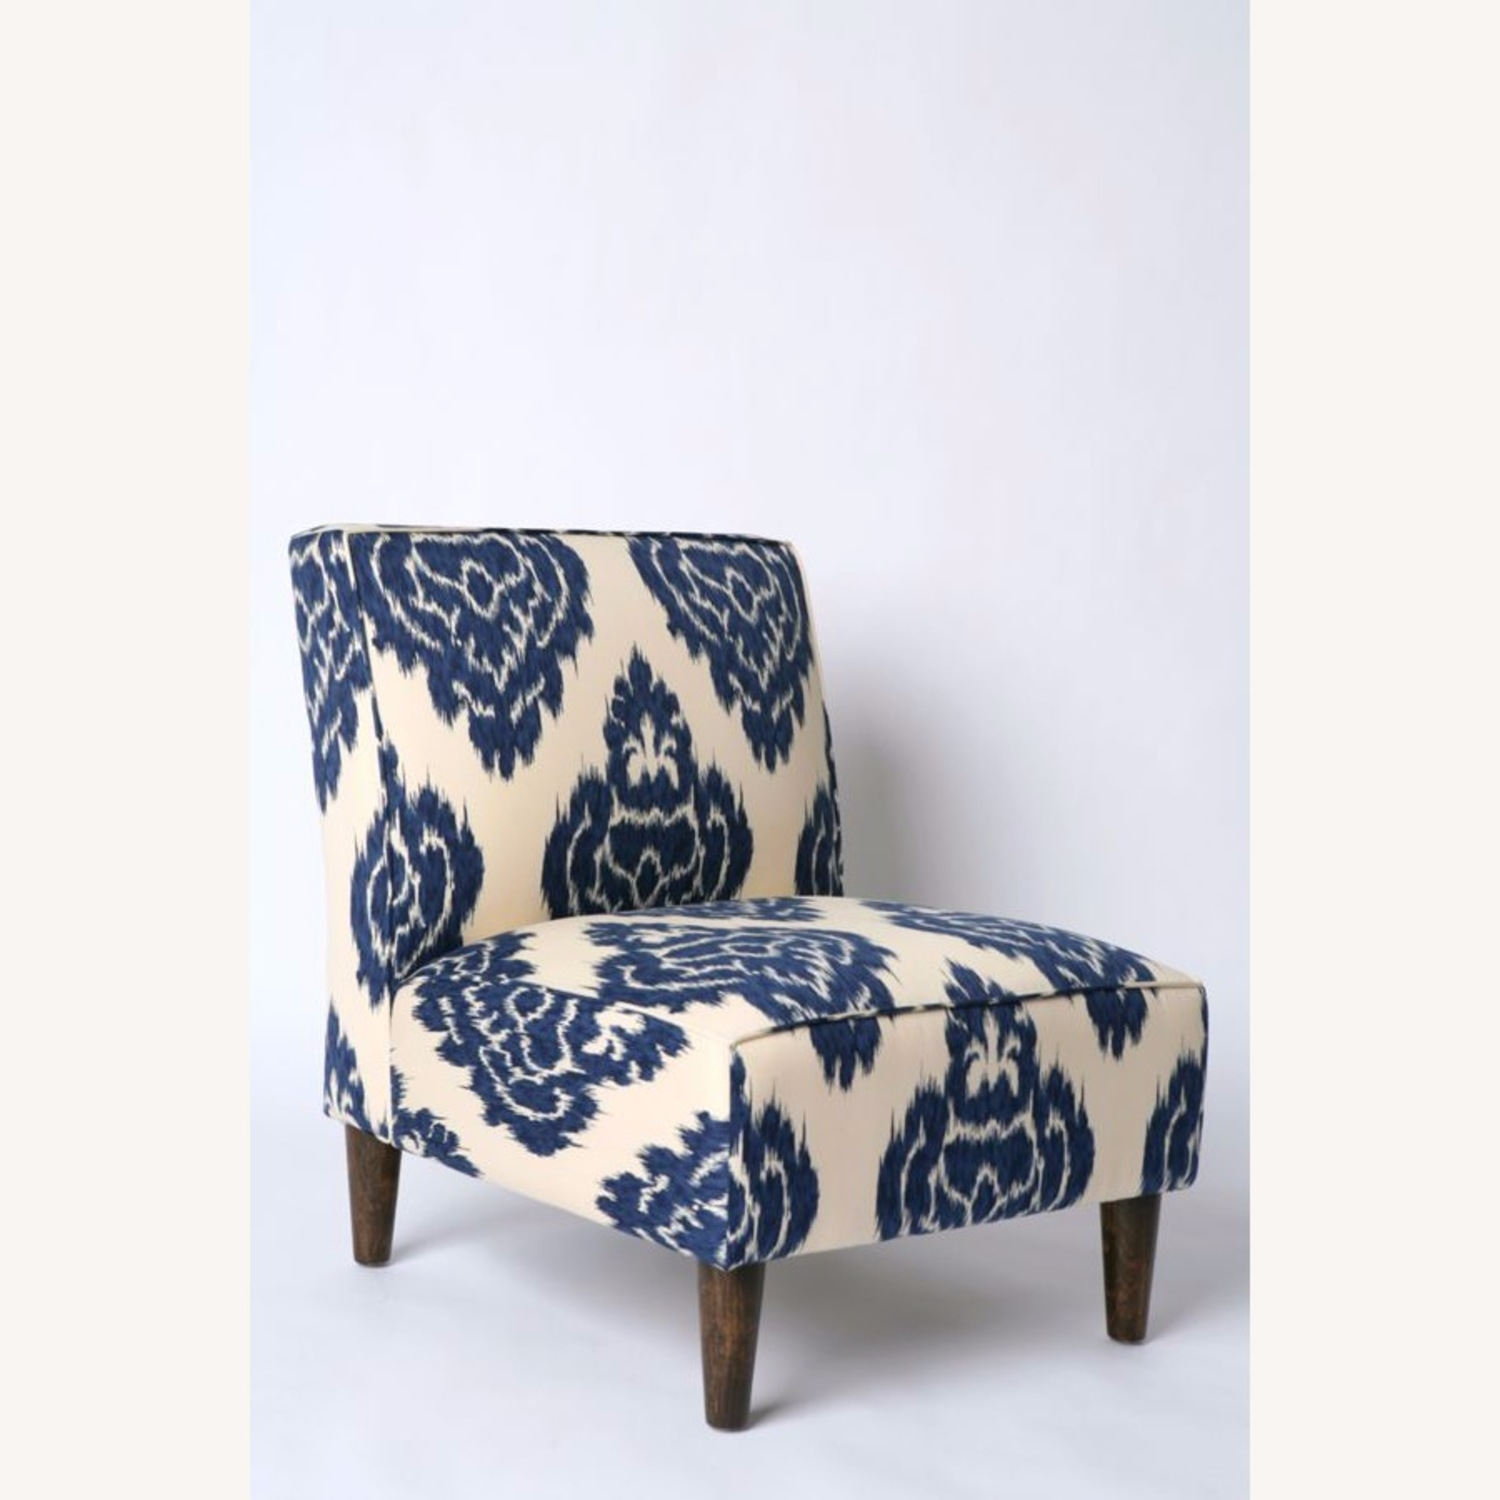 Small Slipper Chairs 2